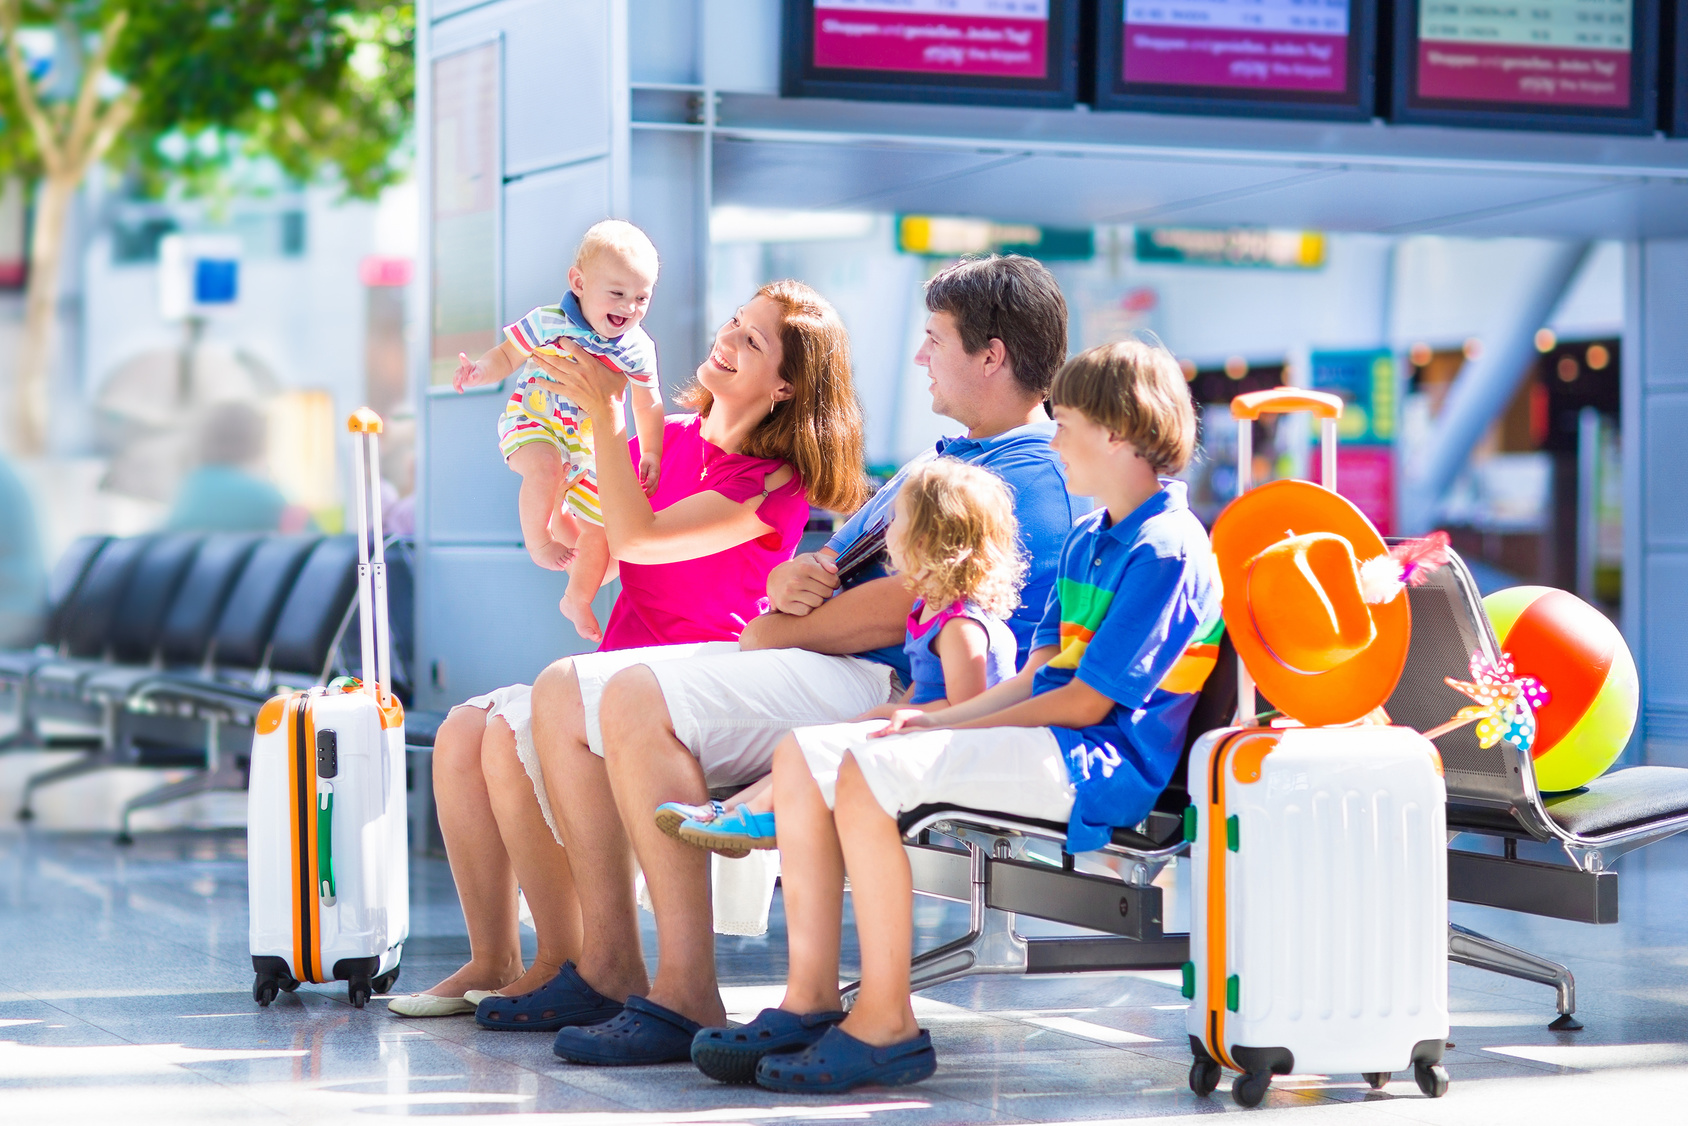 Beautiful young family at the airport | sense organics - fair trade baby clothes